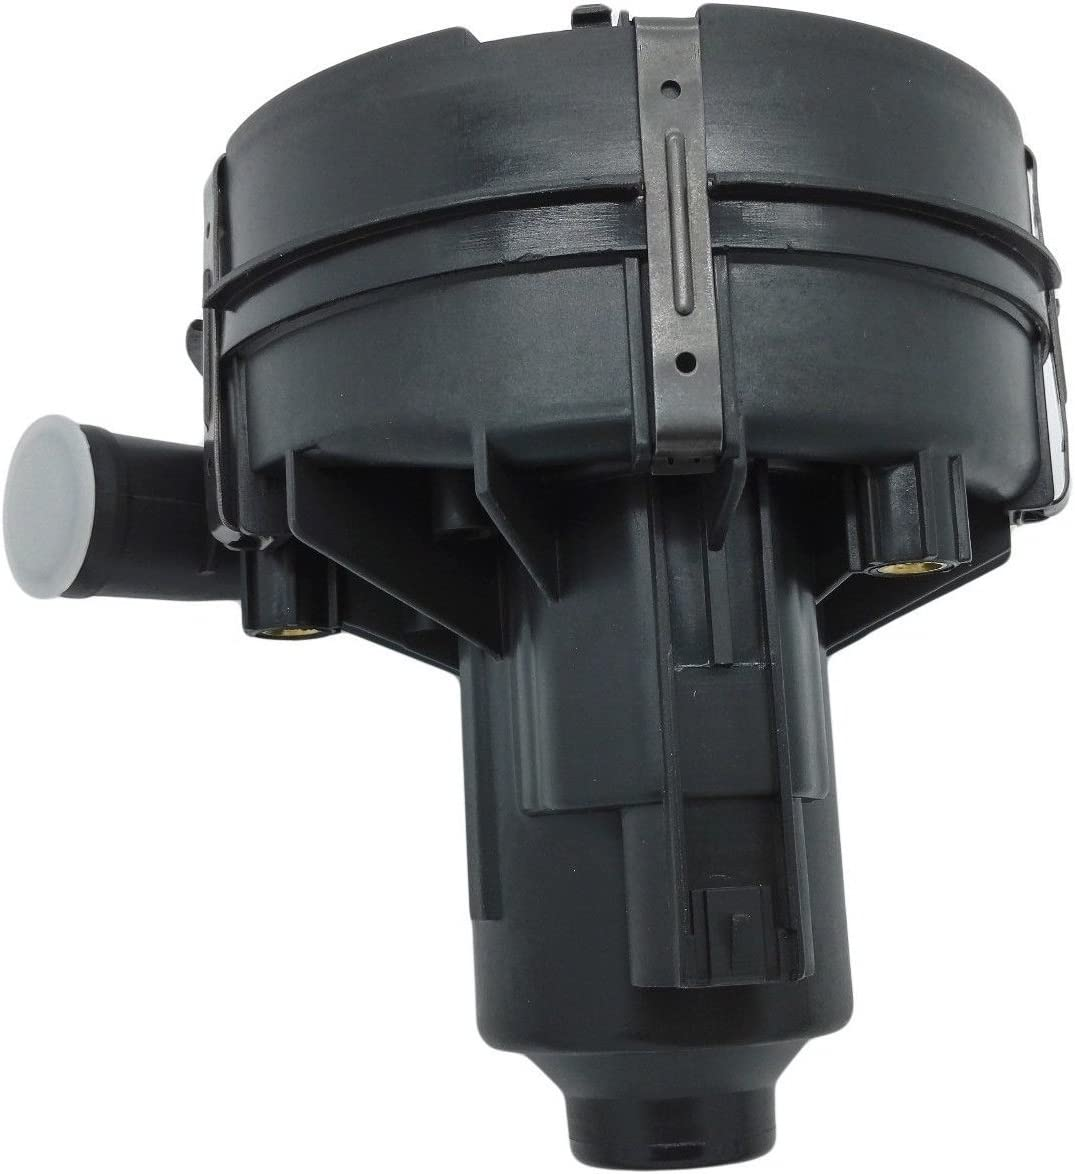 OKAY MOTOR Secondary Air Pump 3.5 Oldsmobile Max 79% OFF Max 44% OFF Aurora Intrigue for